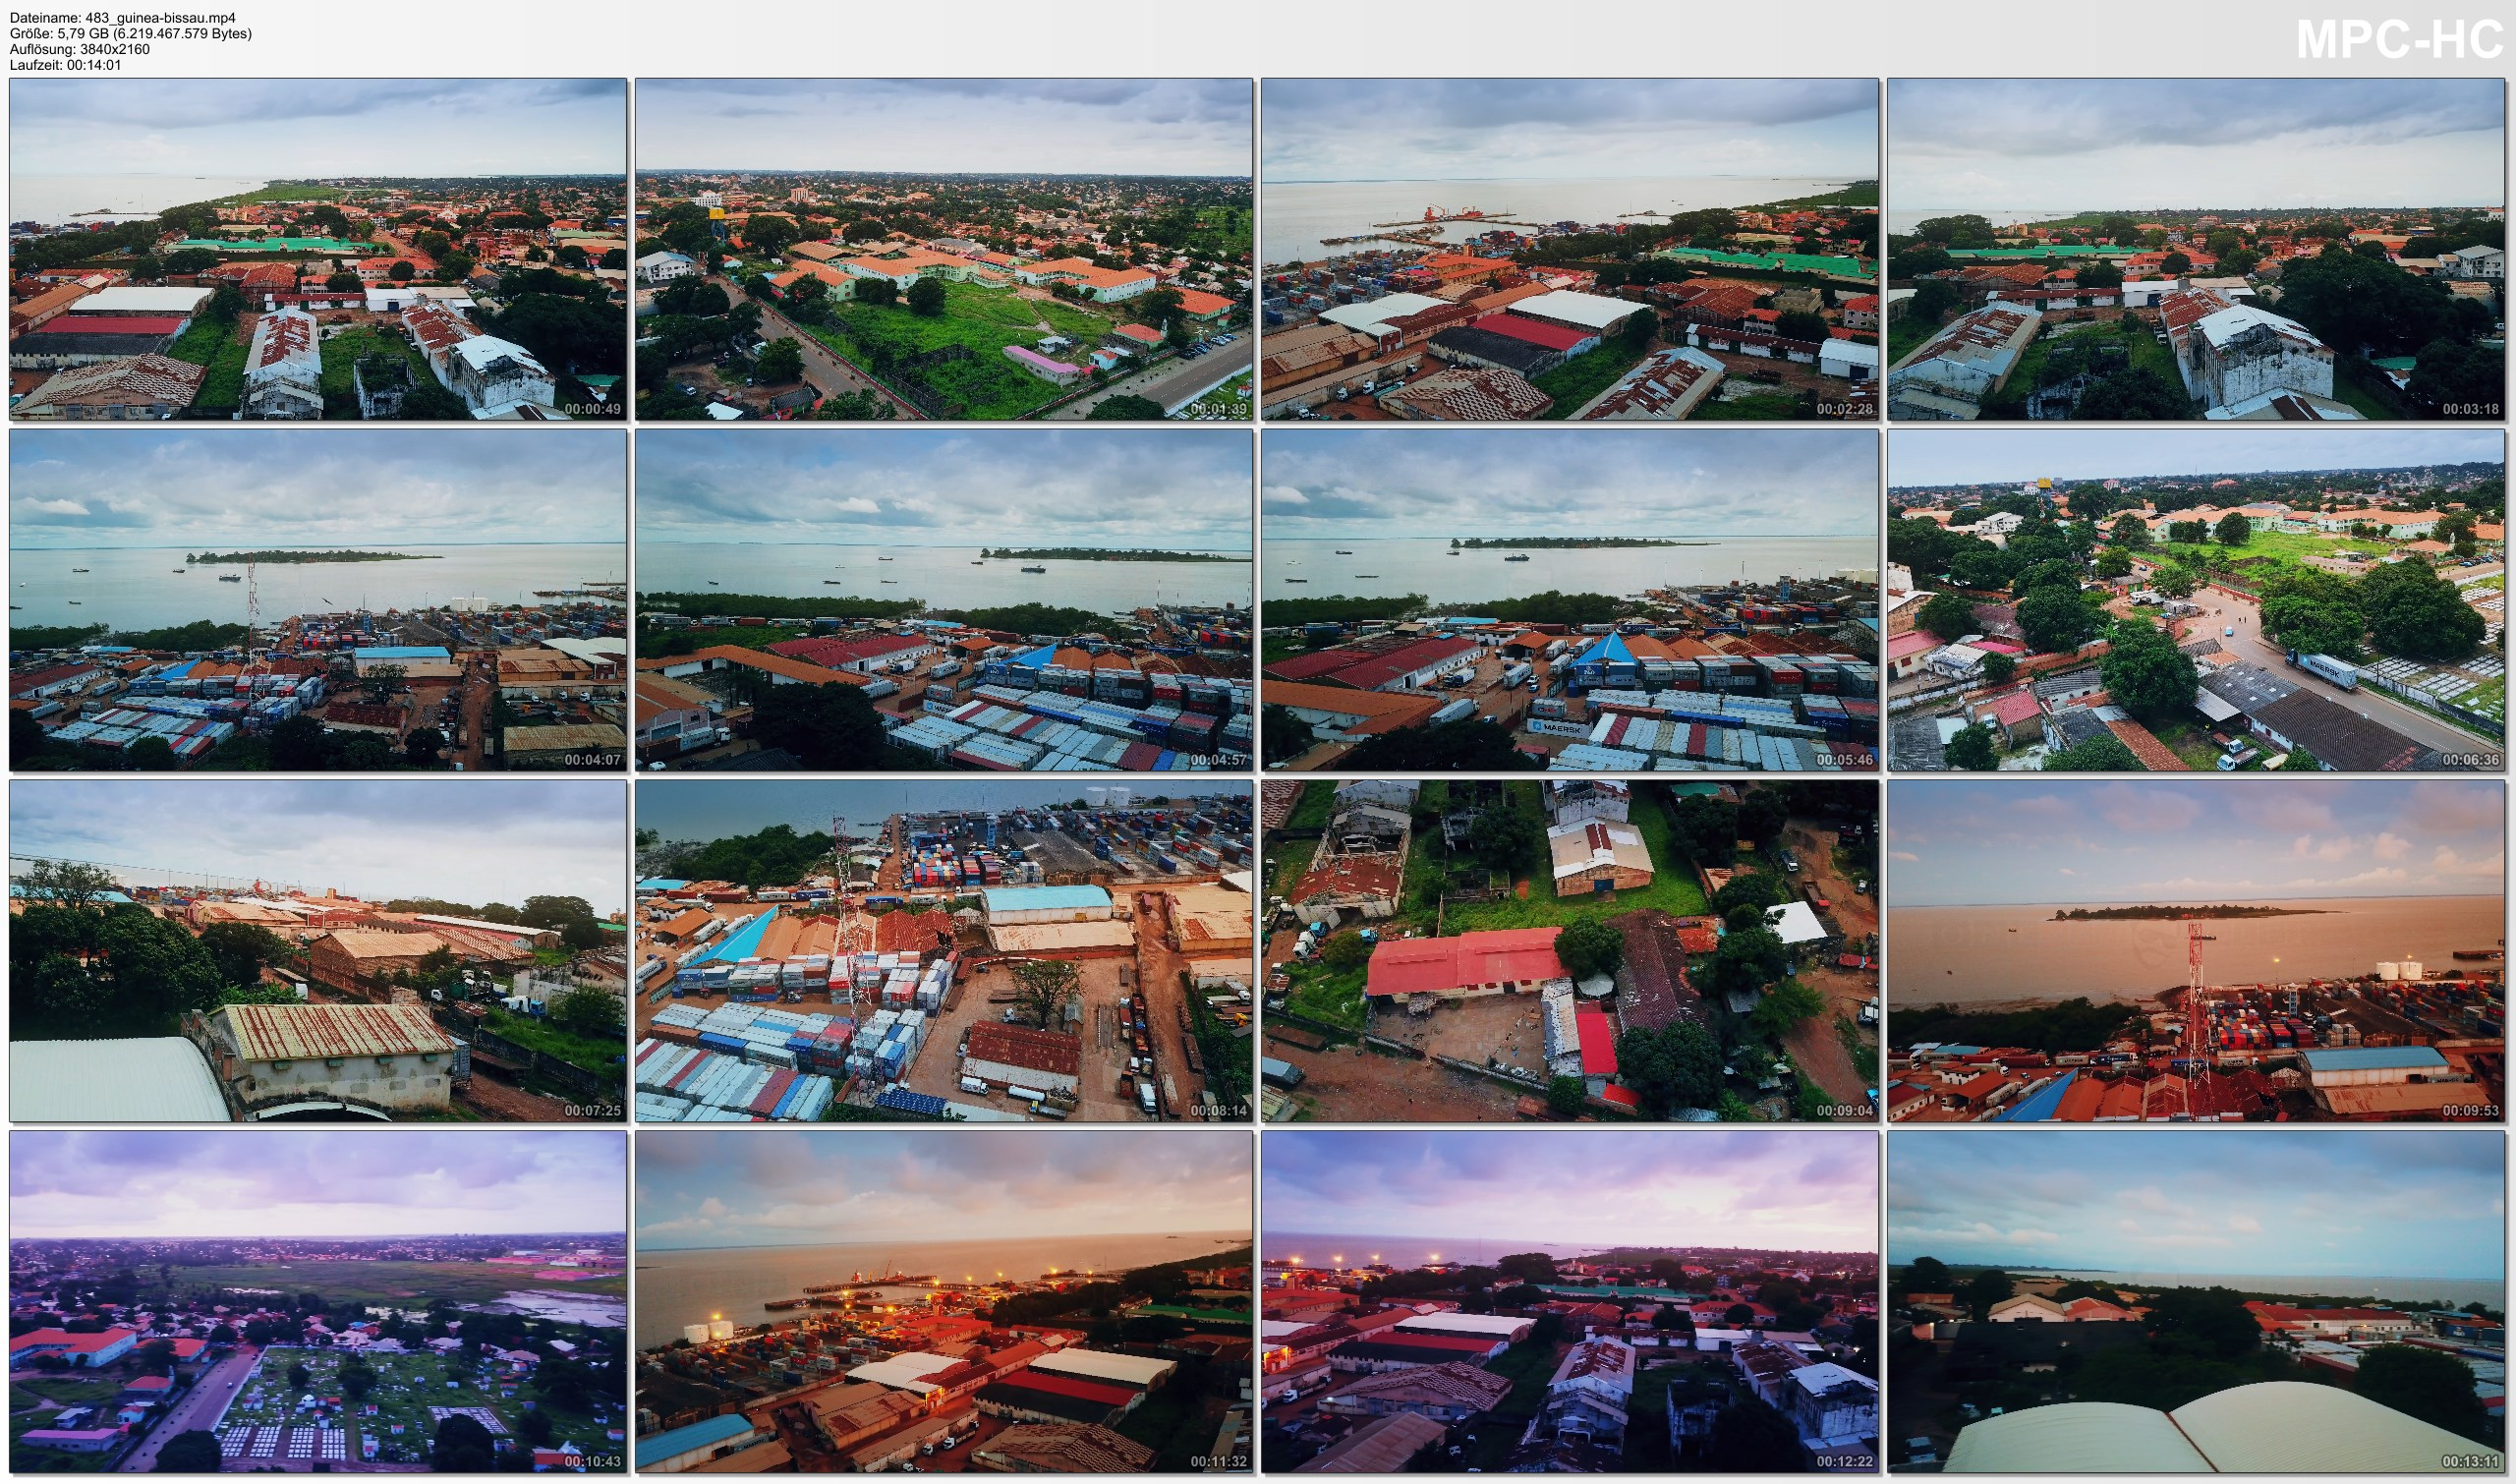 Drone Pictures from Video 【4K】Drone RAW Footage | This is GUINEA-BISSAU 2020 | Capital City Bissau | UltraHD Stock Video